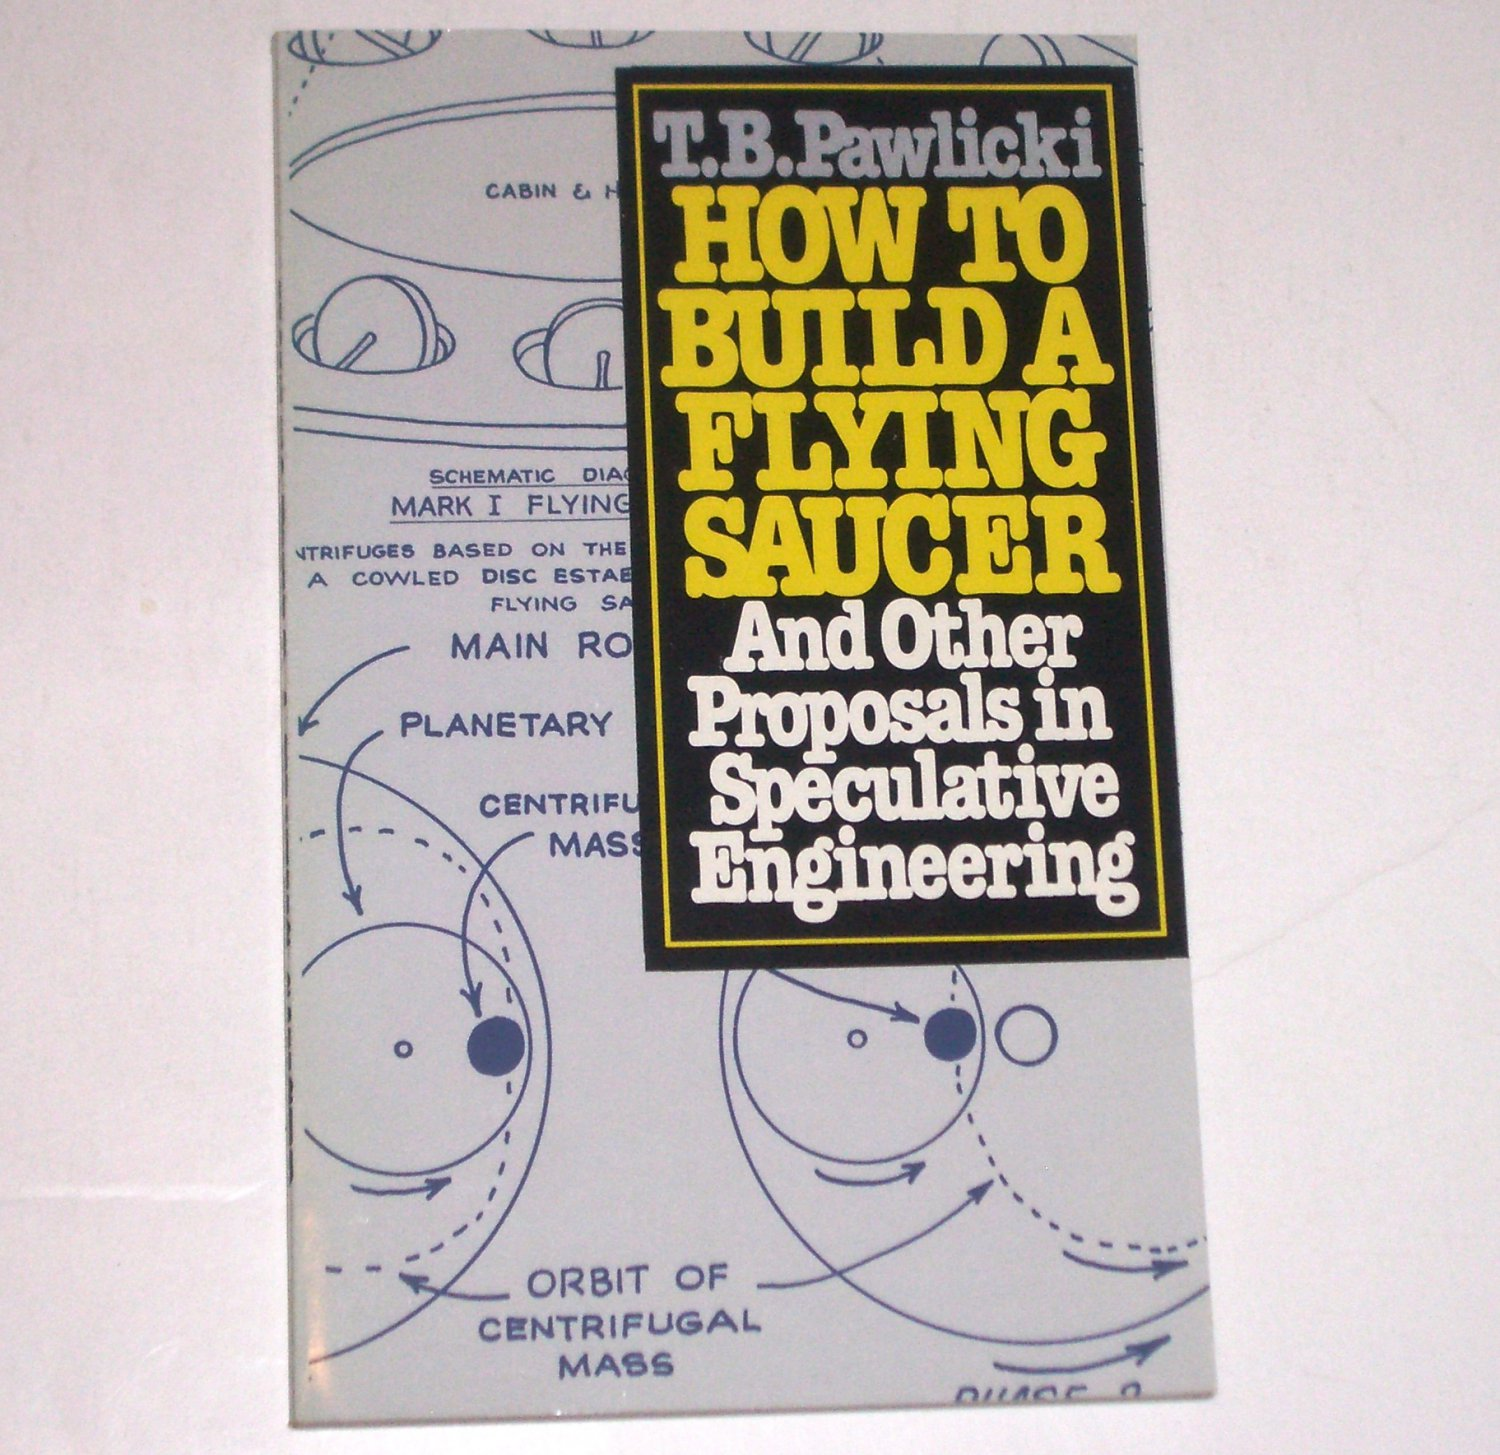 How to Build a Flying Saucer: And Other Proposals in Speculative Engineering by T. B. Pawlicki 1980